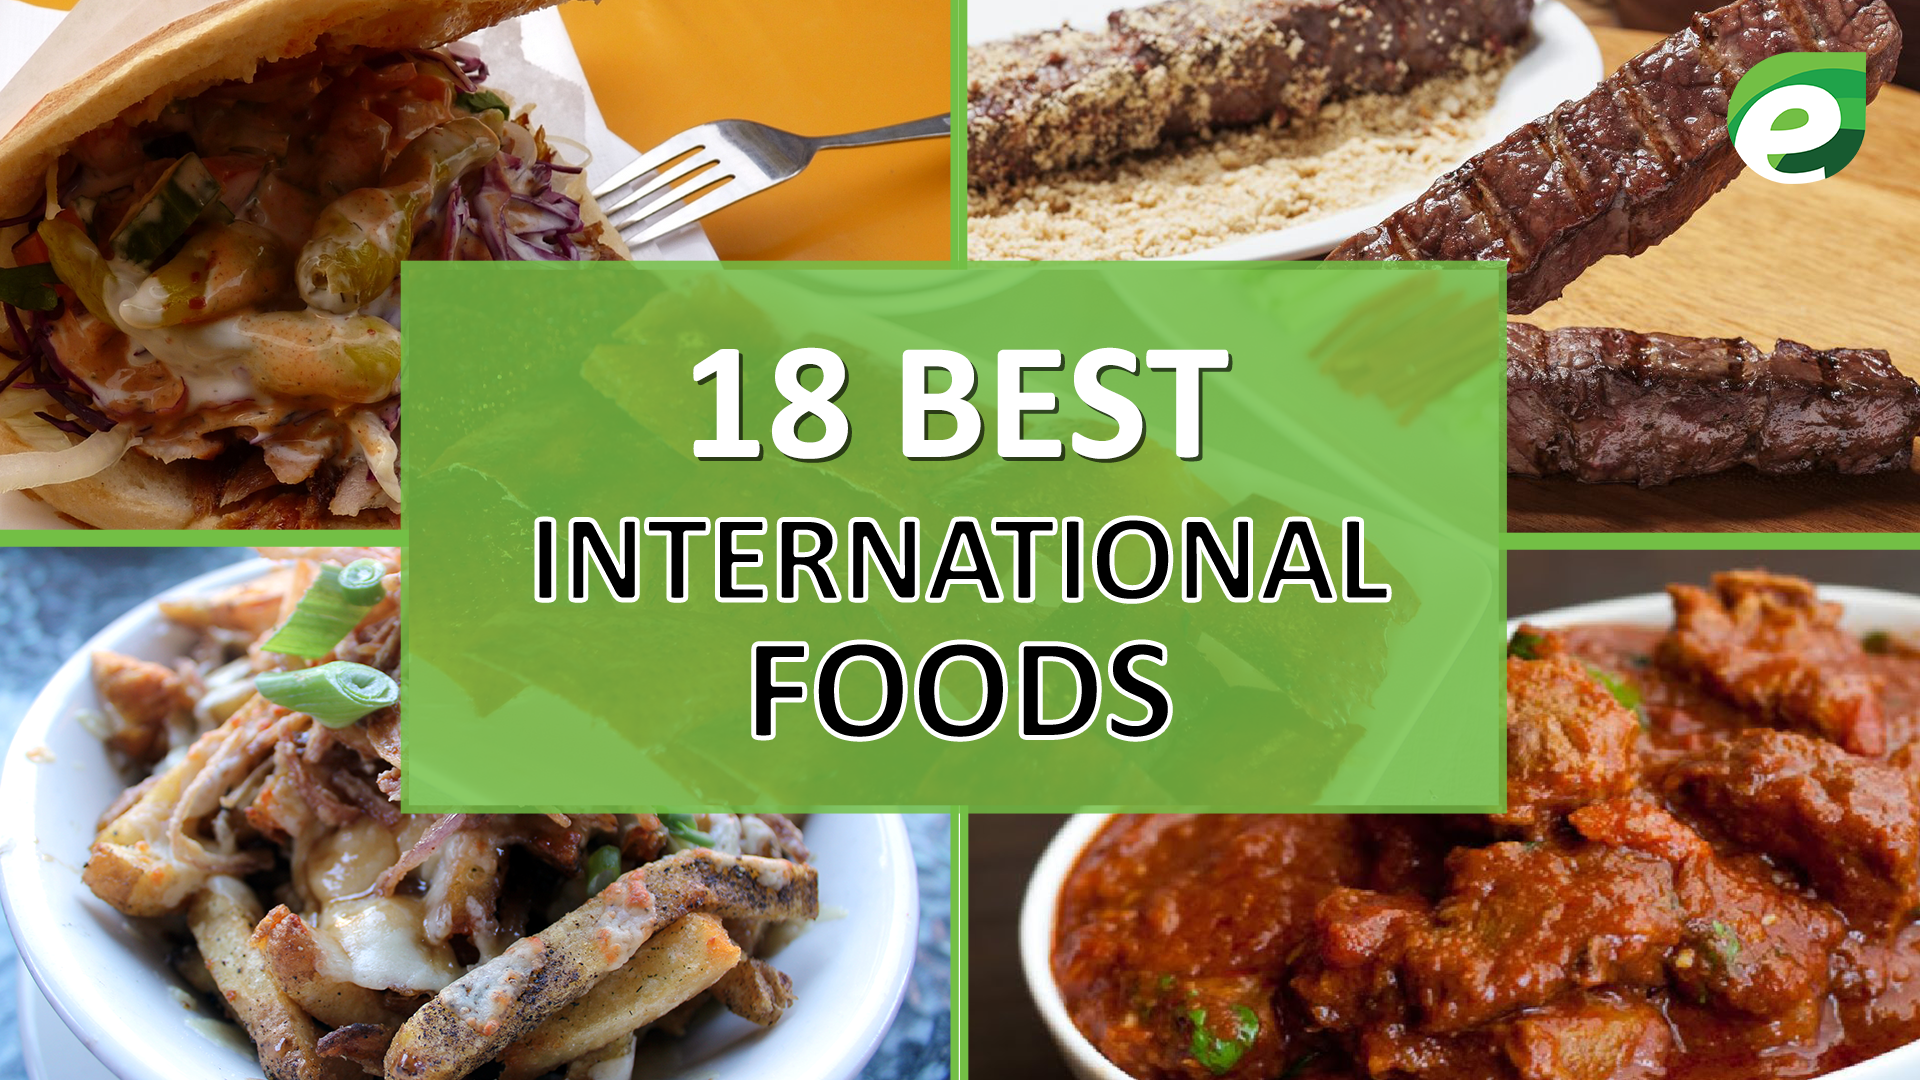 International Food Online Canada